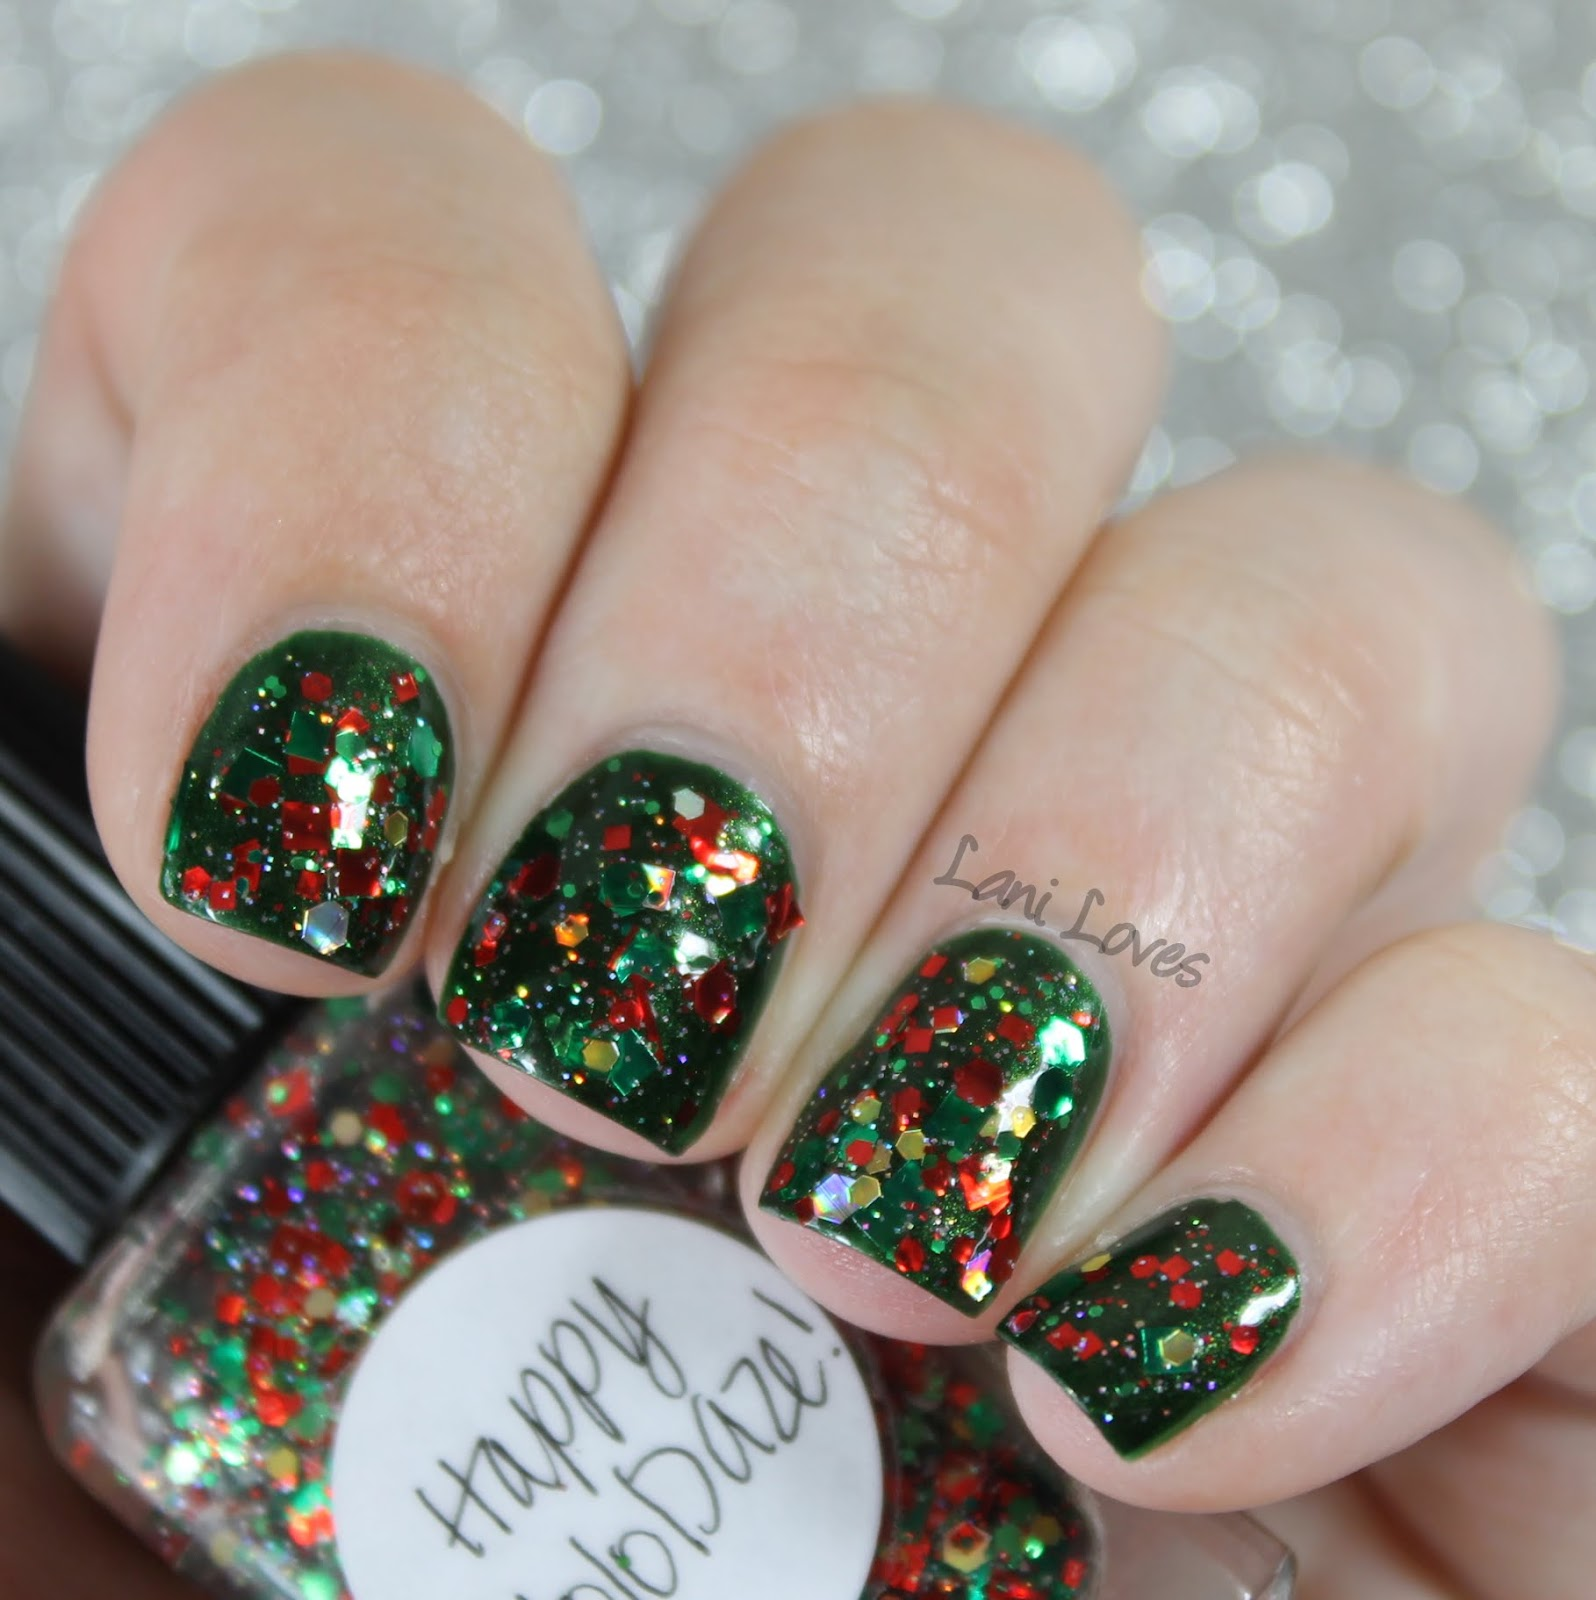 Lynnderella Happy HoloDaze! nail polish swatch